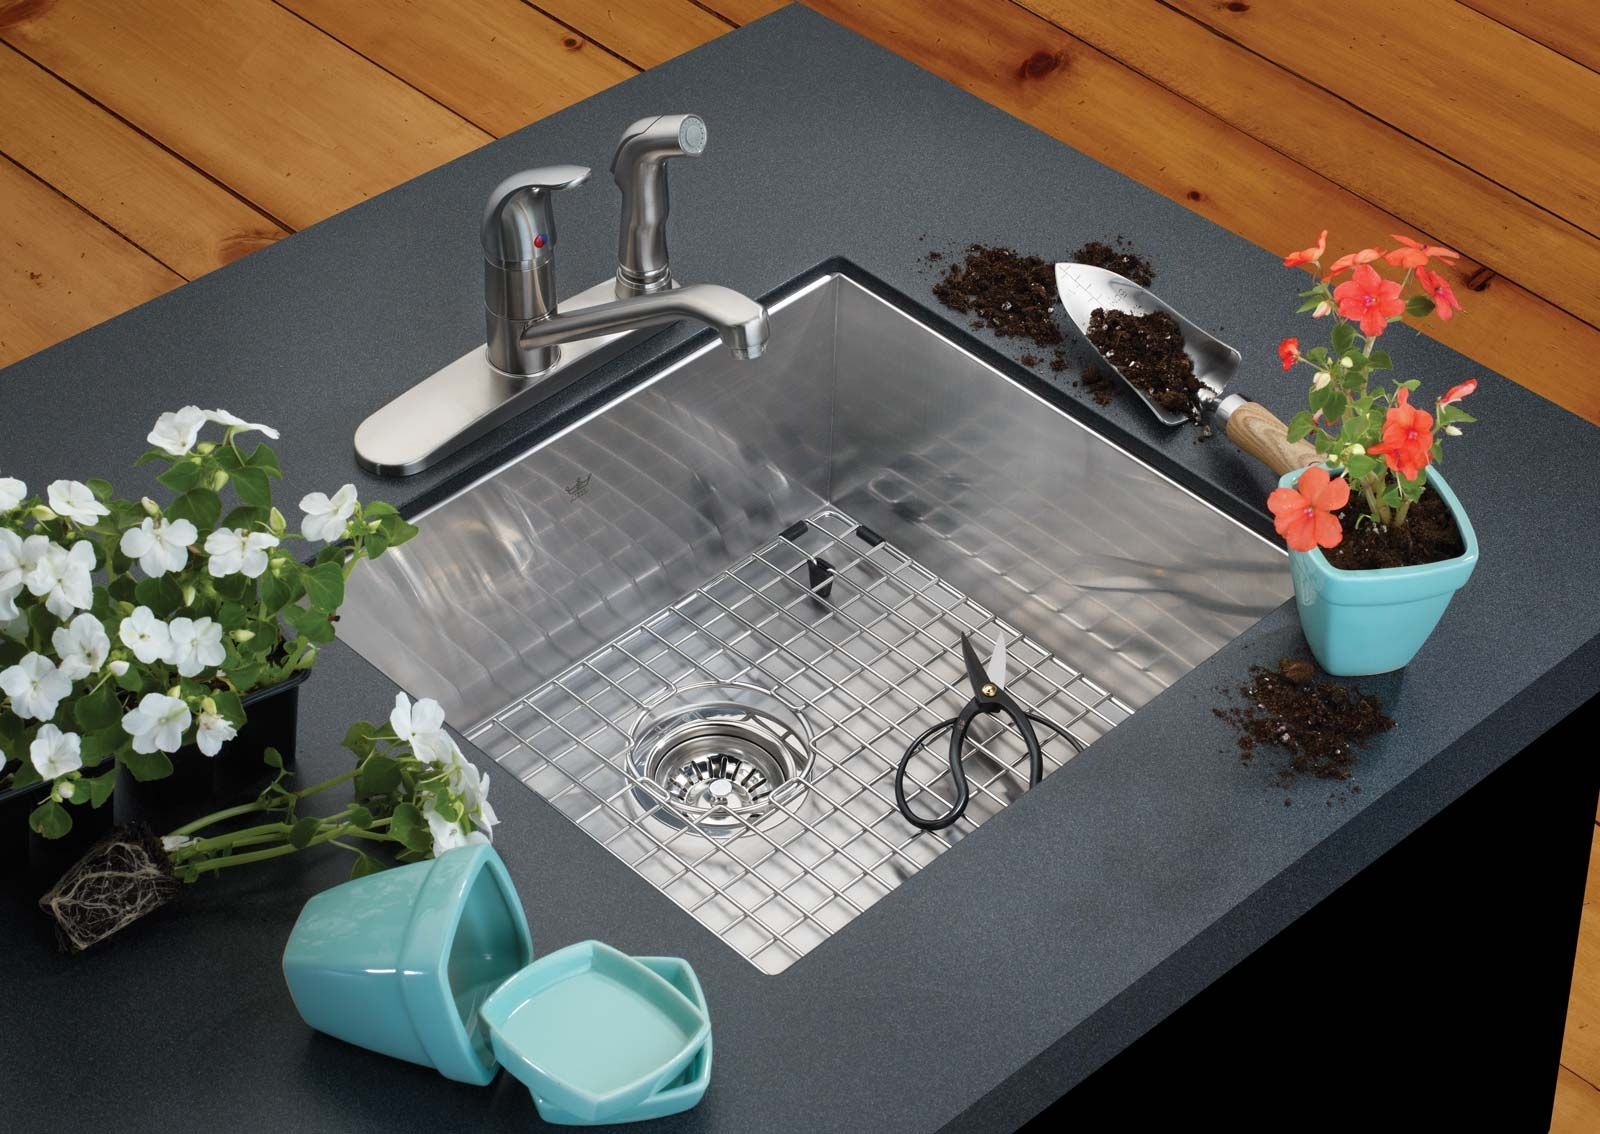 installed steel sink with metal grill